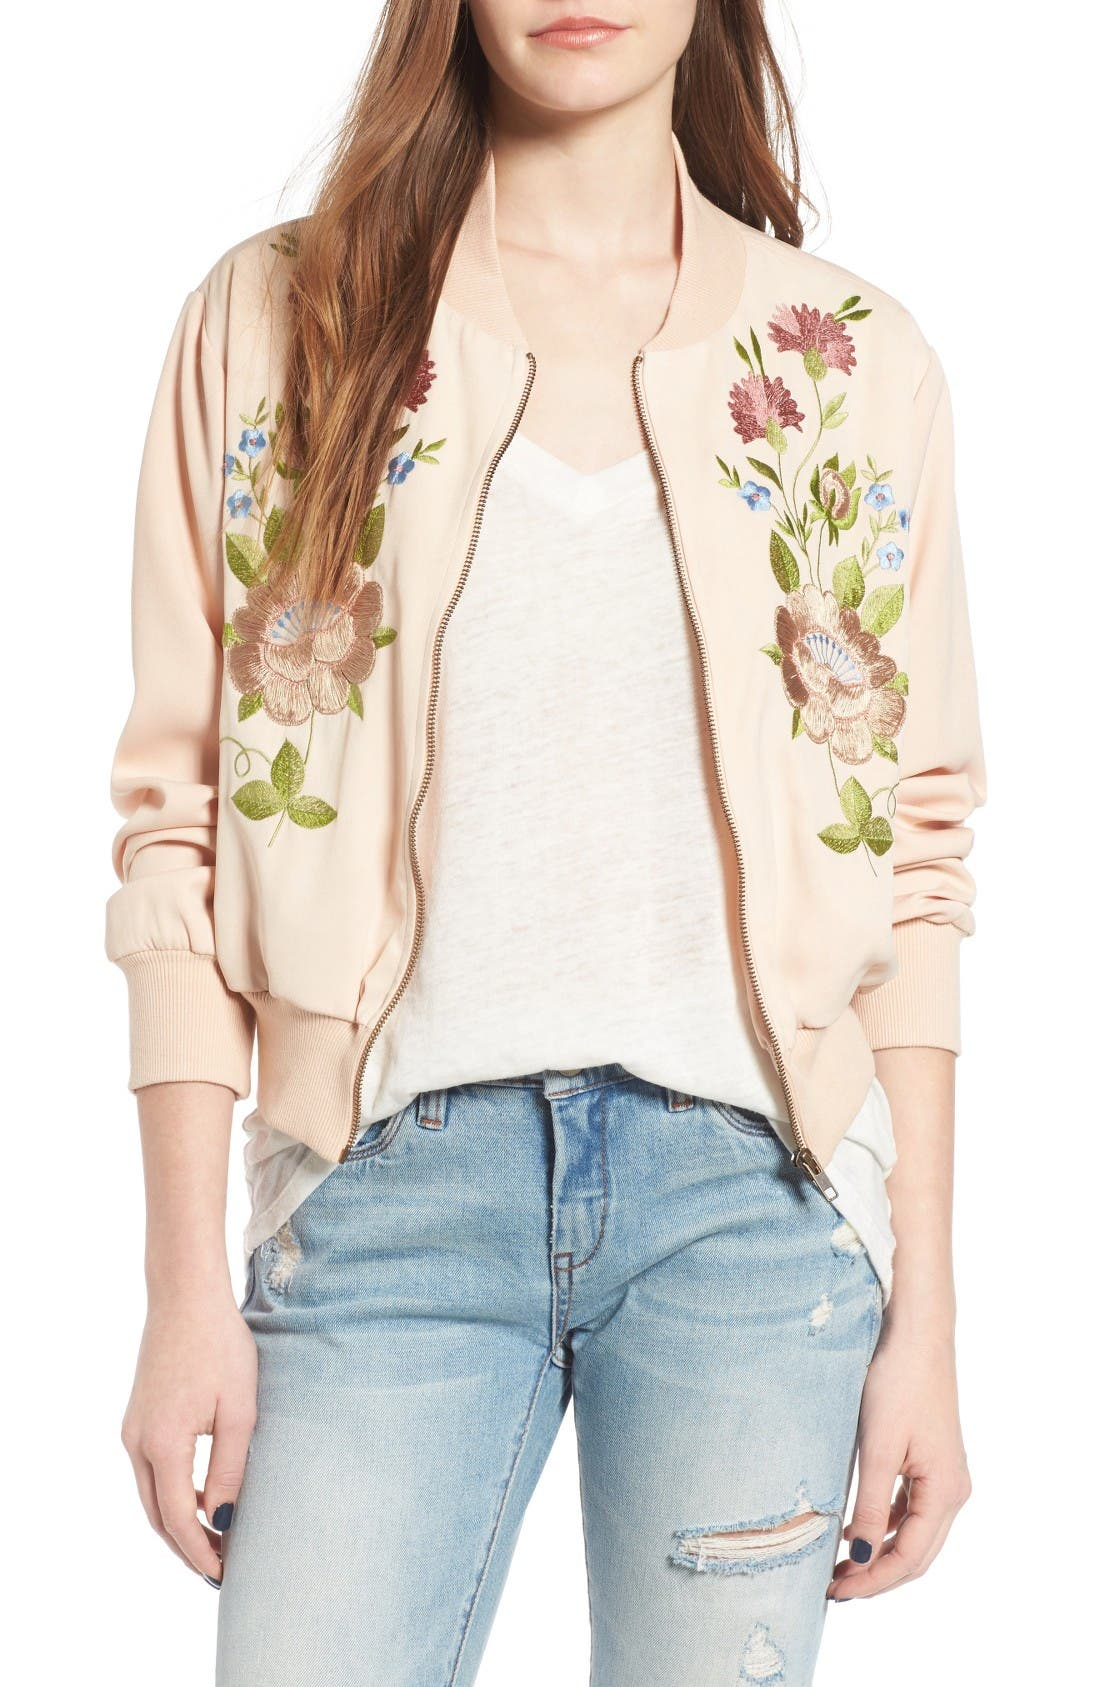 Main Image - Glamorous Floral Embroidered Bomber Jacket